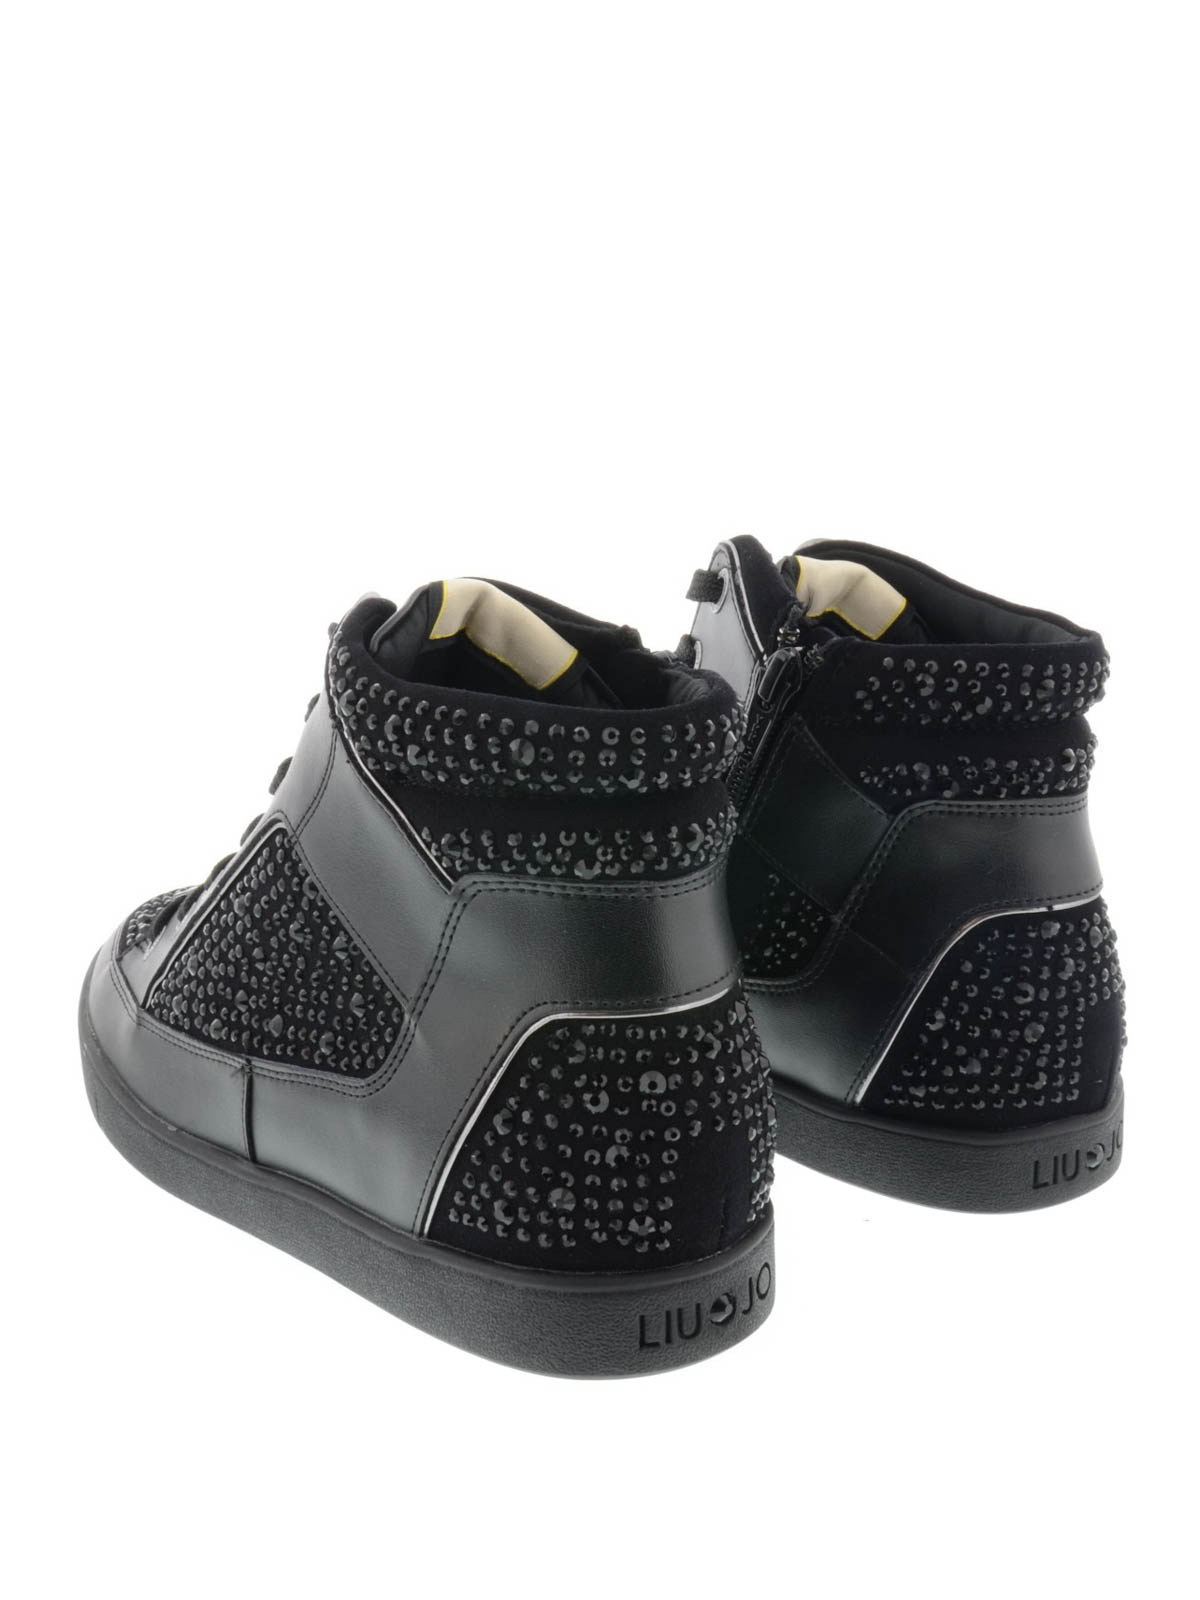 Liu Jo - High top Aura sneakers - trainers - S65113P001522222 ... 09189974908